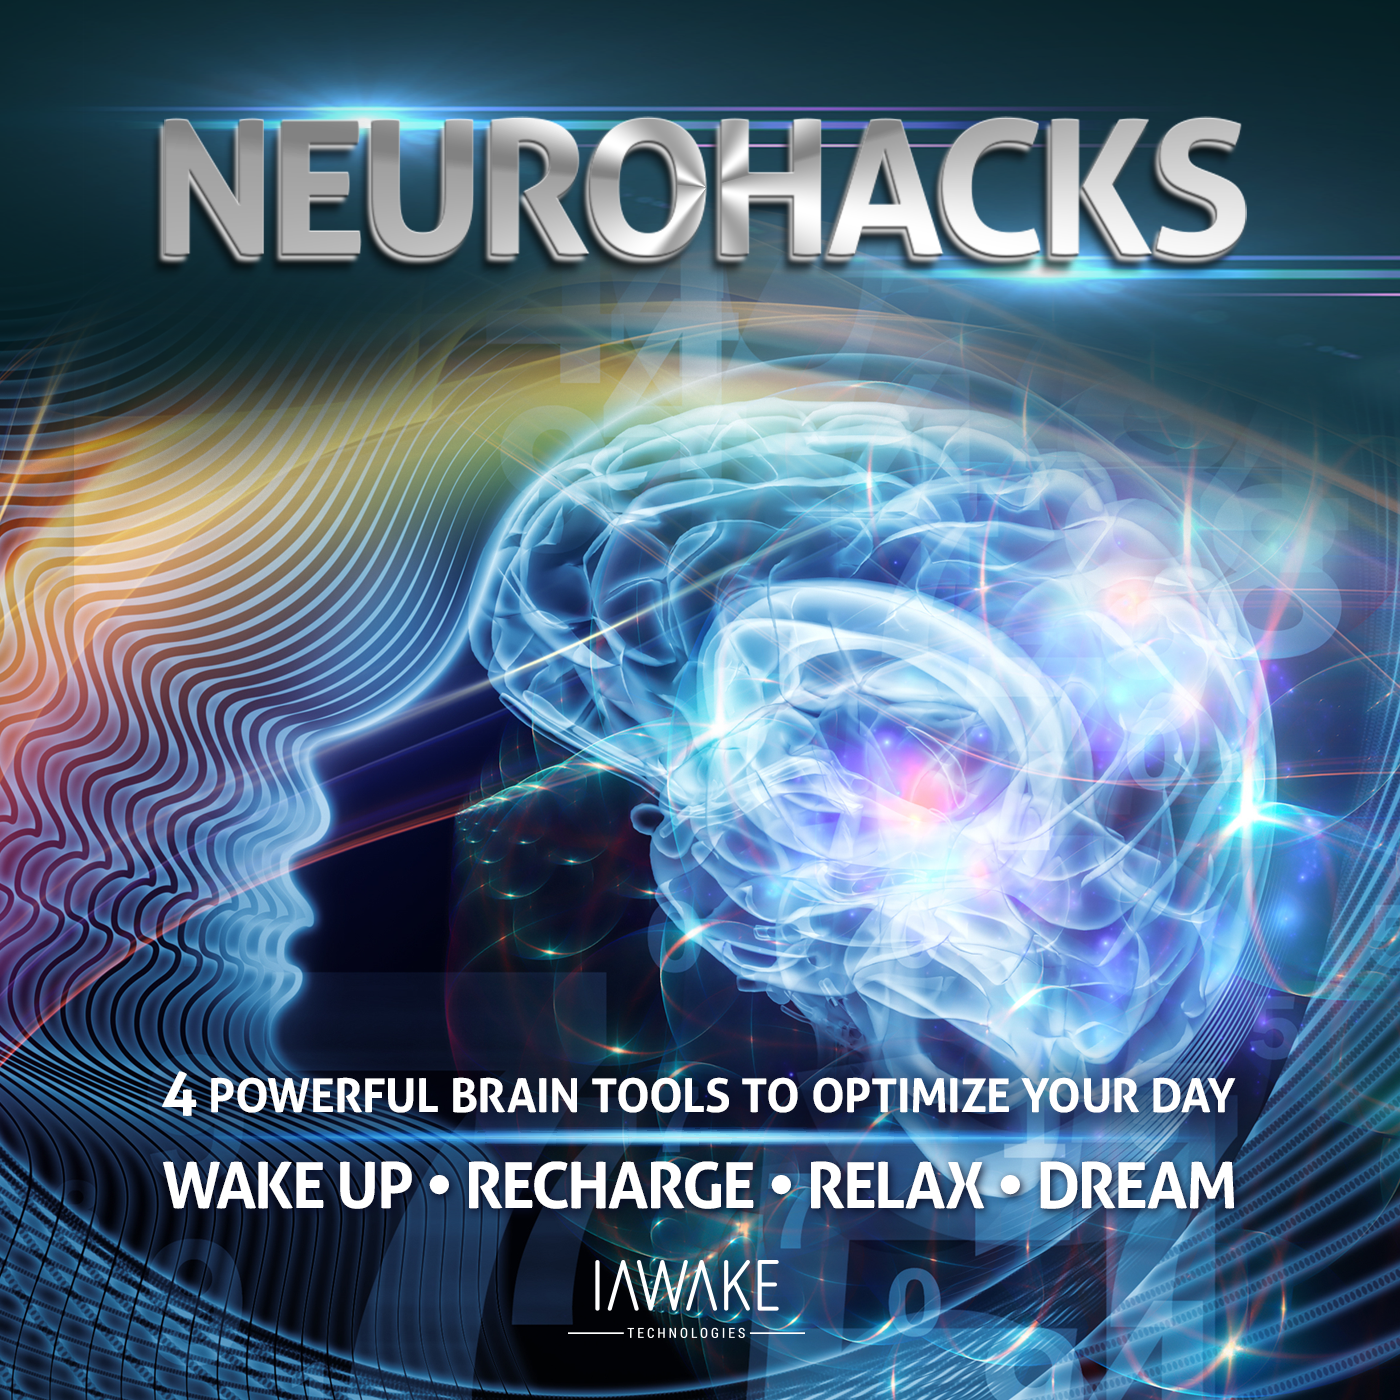 Daily Neurohacks